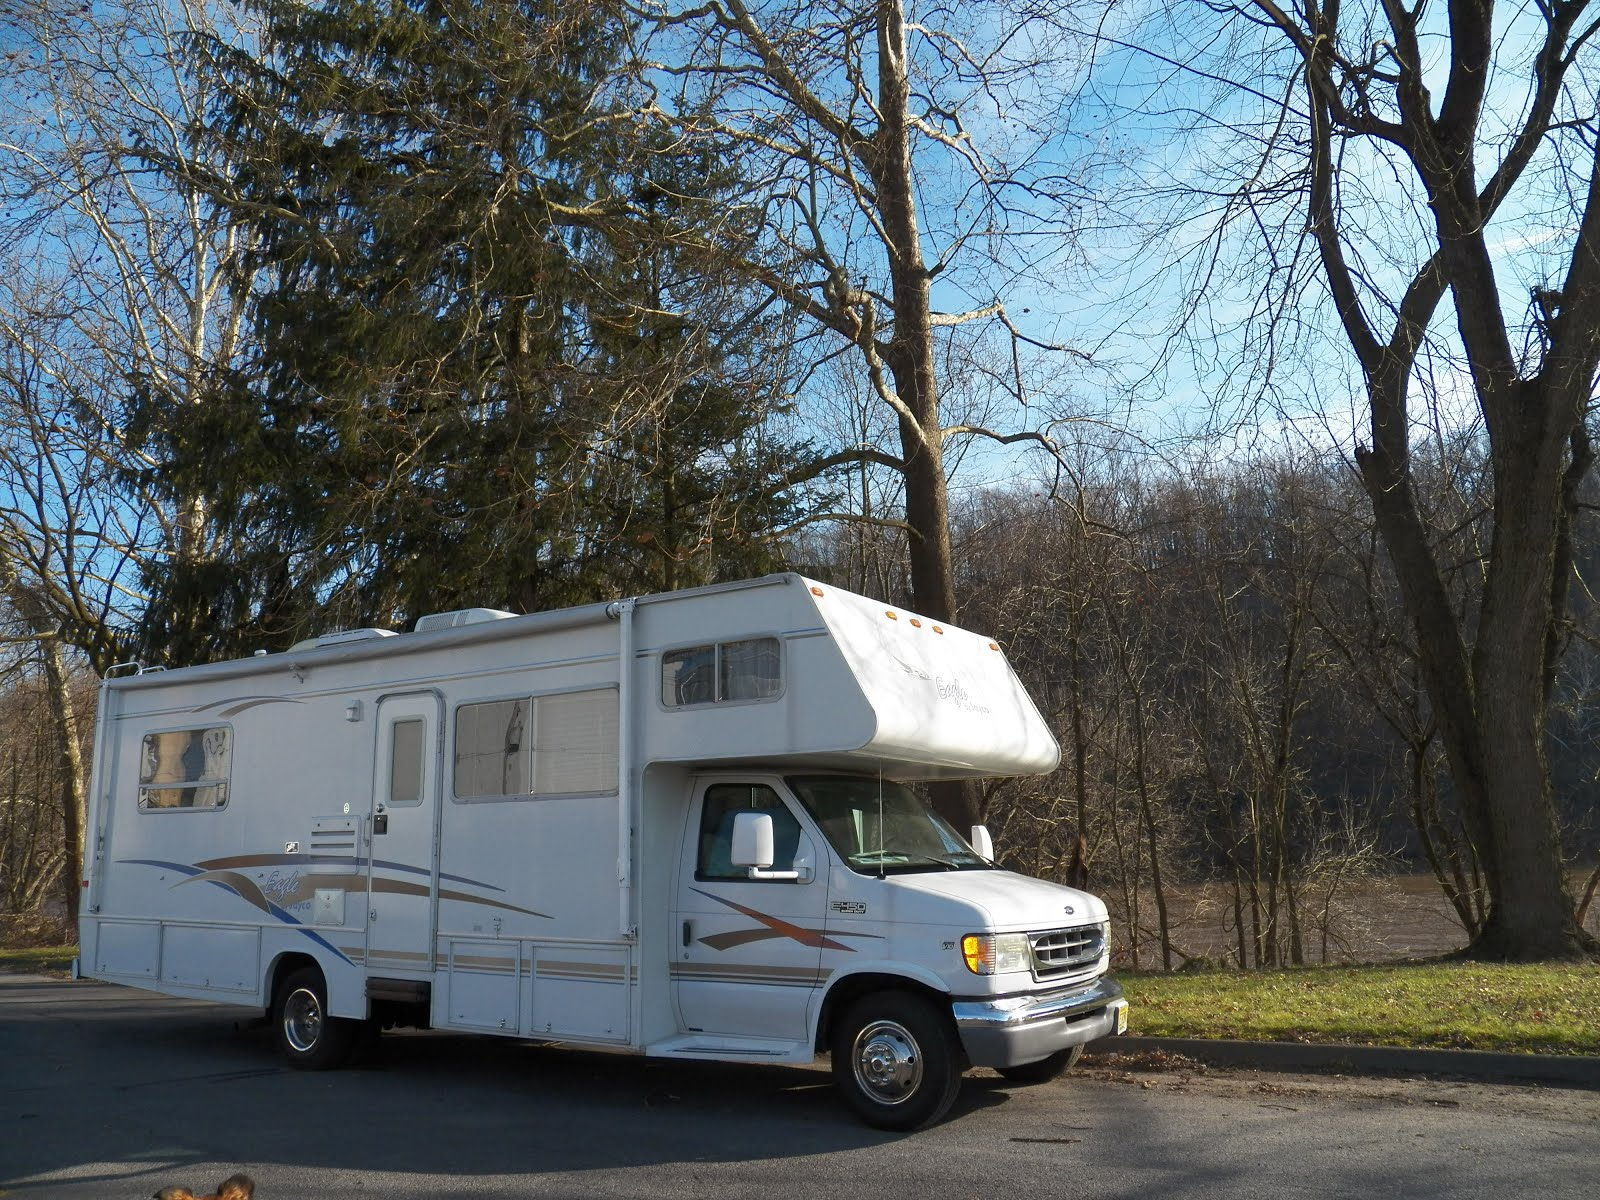 Samantha, our 28' RV